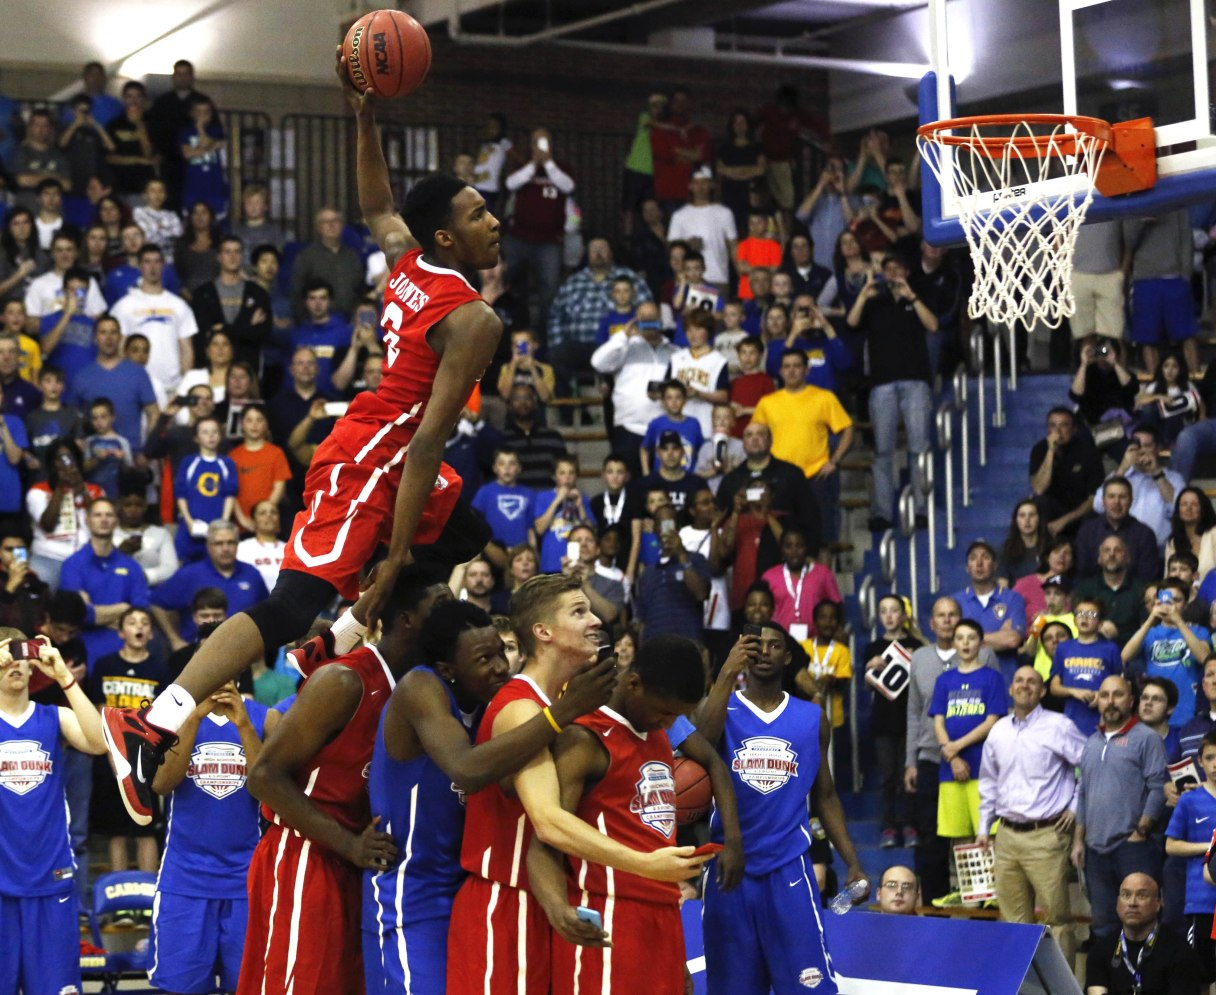 Apr 1, 2015; -- Carmel, IN, U.S.A -- American Family Insurance Slam Dunk contestant Derrick Jones (6) dunks over teammates at the American Family Insurance High School Slam Dunk and Three-Point Championship -- Photo by Aaron Doster-USA TODAY Sports Images, Gannett ORG XMIT: US 132898 AM FAM Dunk 4/1/2015 [Via MerlinFTP Drop]